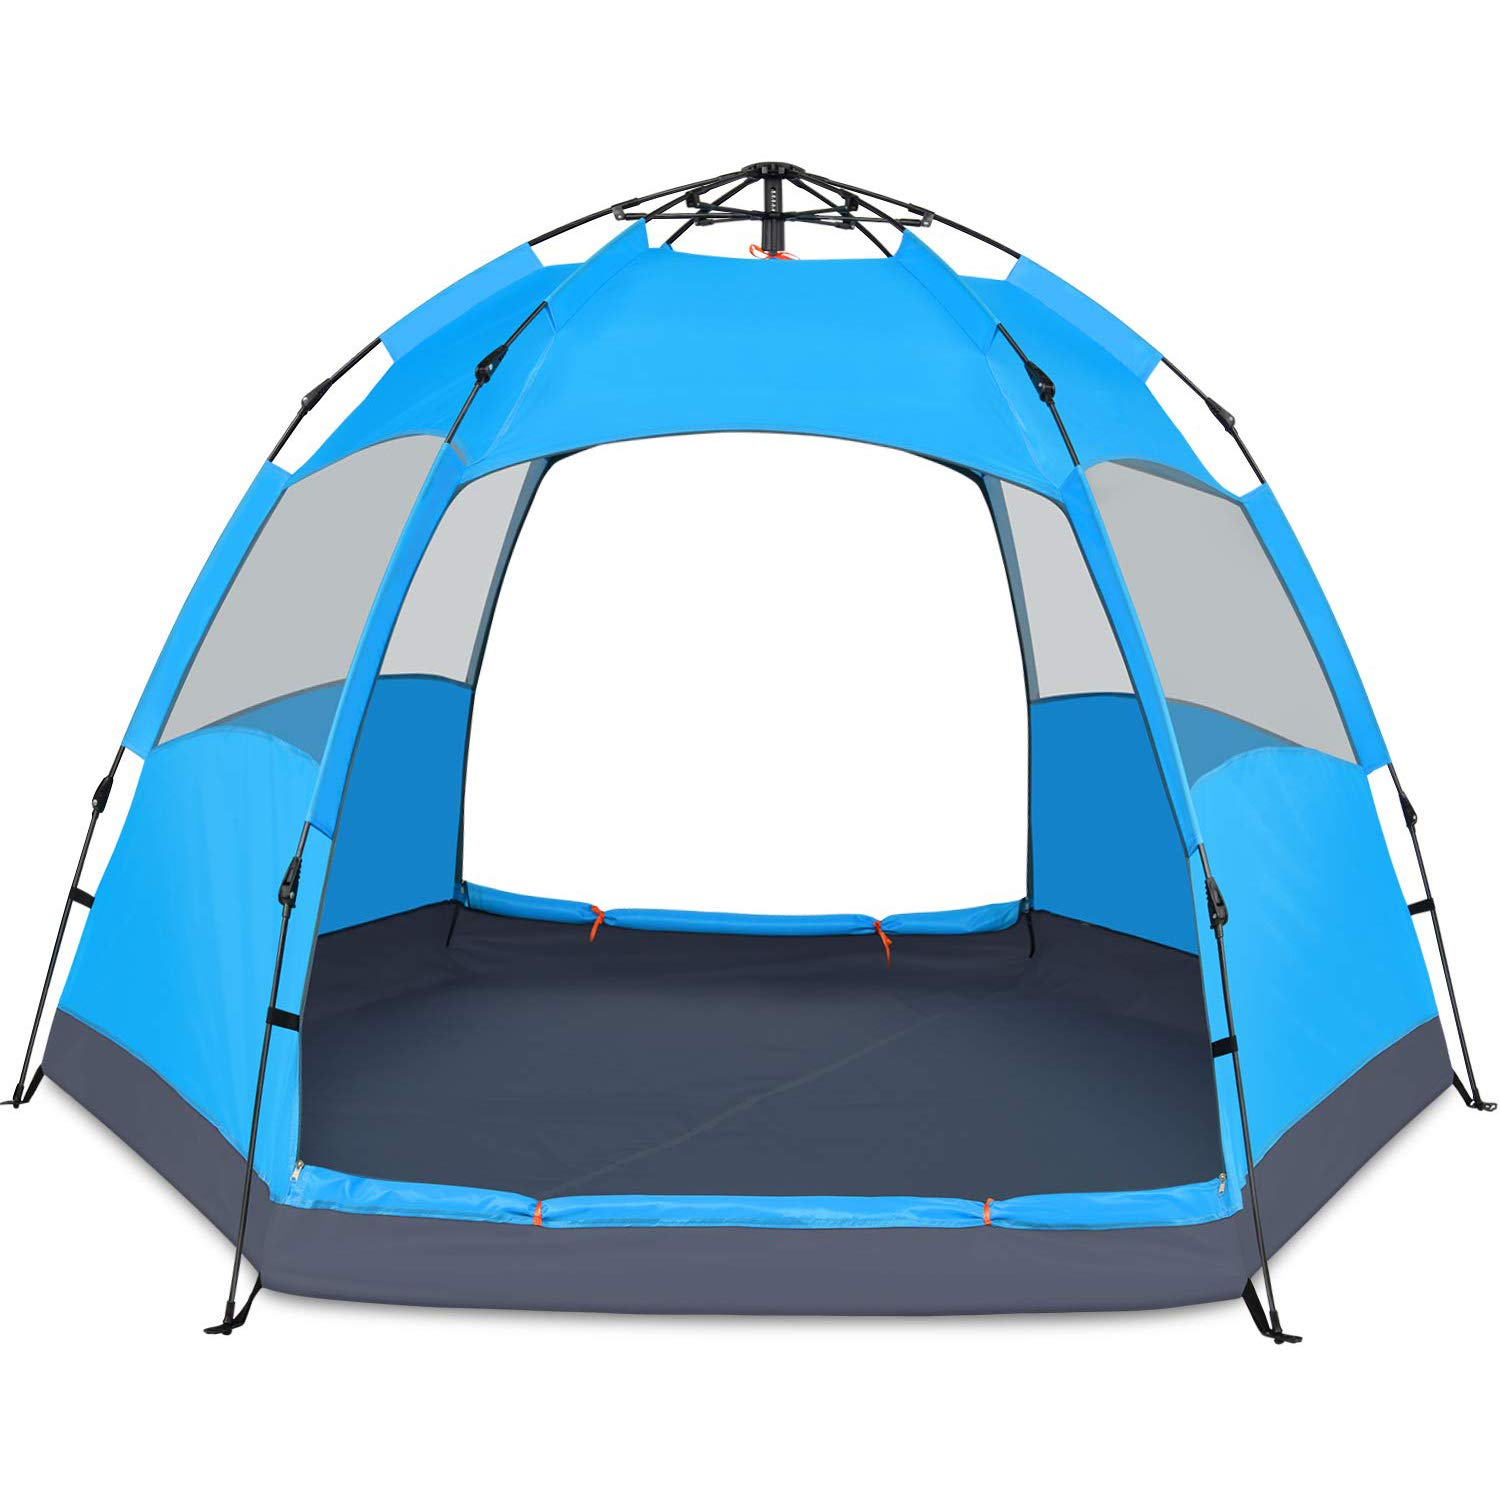 BATTOP 4 Person Tent for Camping Double Layer Family Camping Tent for 4 Seasons Waterproof with Instant Setup by BATTOP